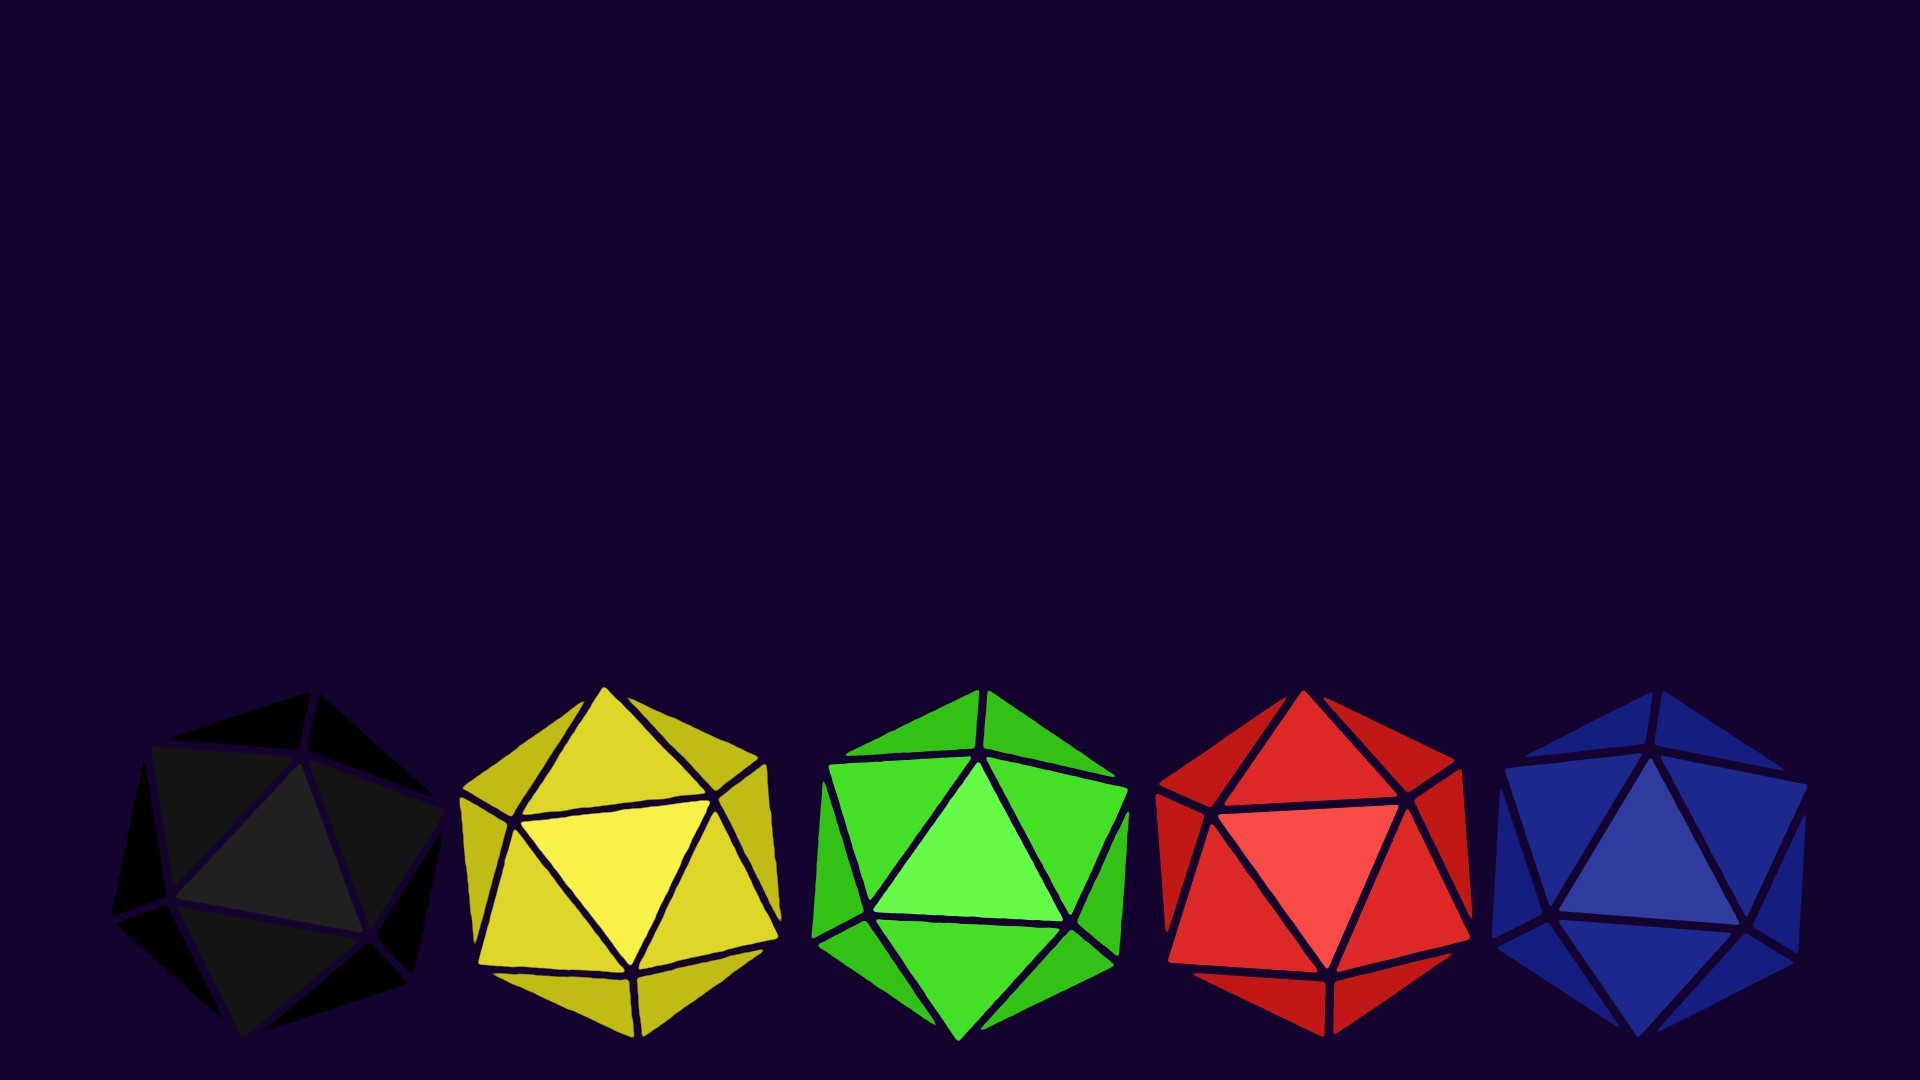 D20 Wallpaper Download Free Beautiful Full Hd Wallpapers For